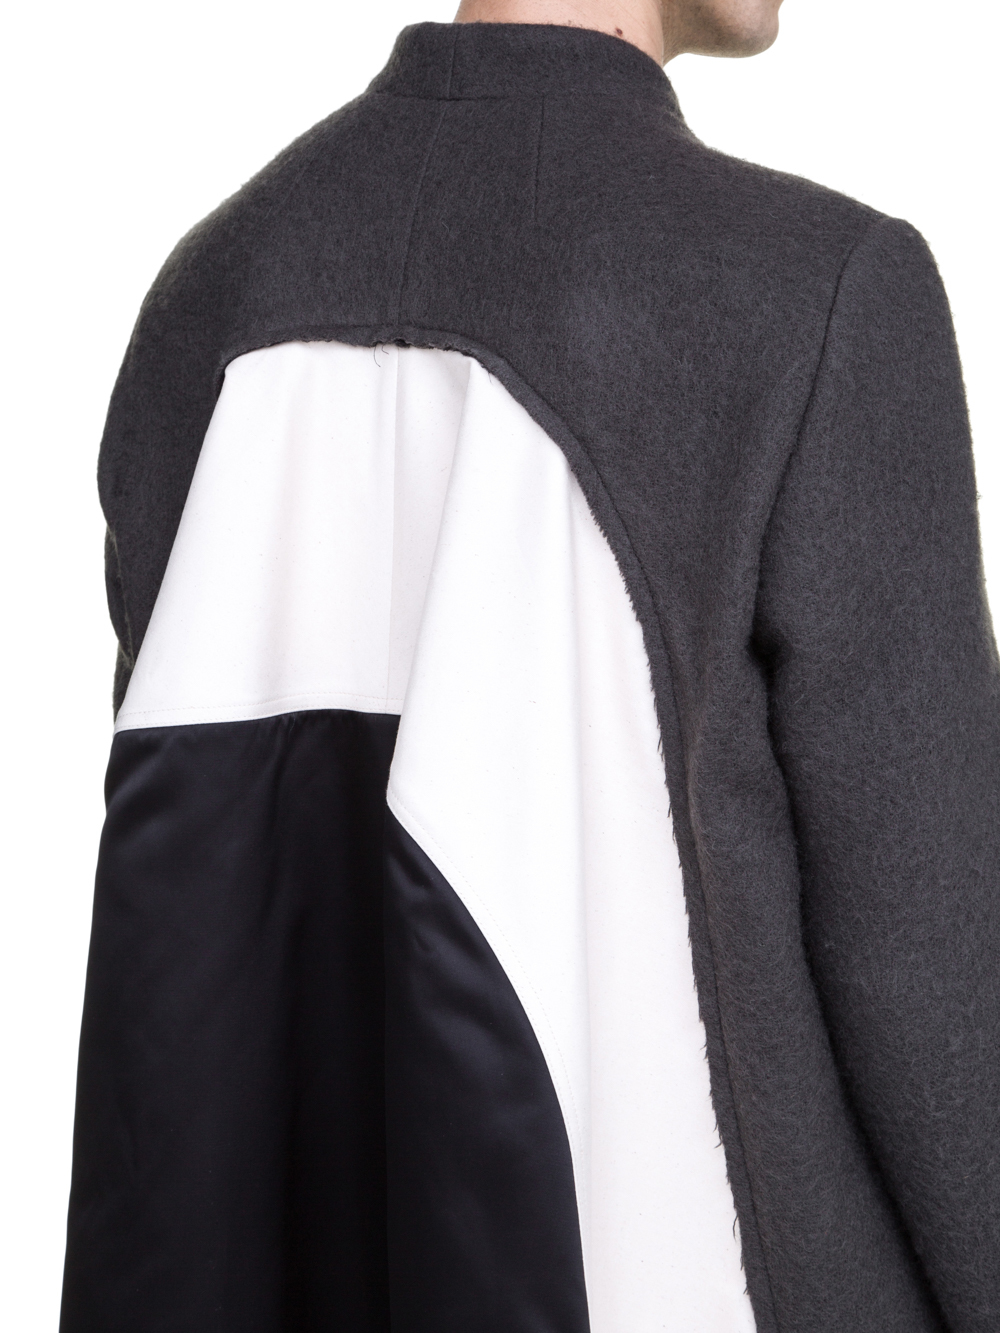 RICK OWENS OFF-THE-RUNWAY WRAP FLAG COAT IN GREY